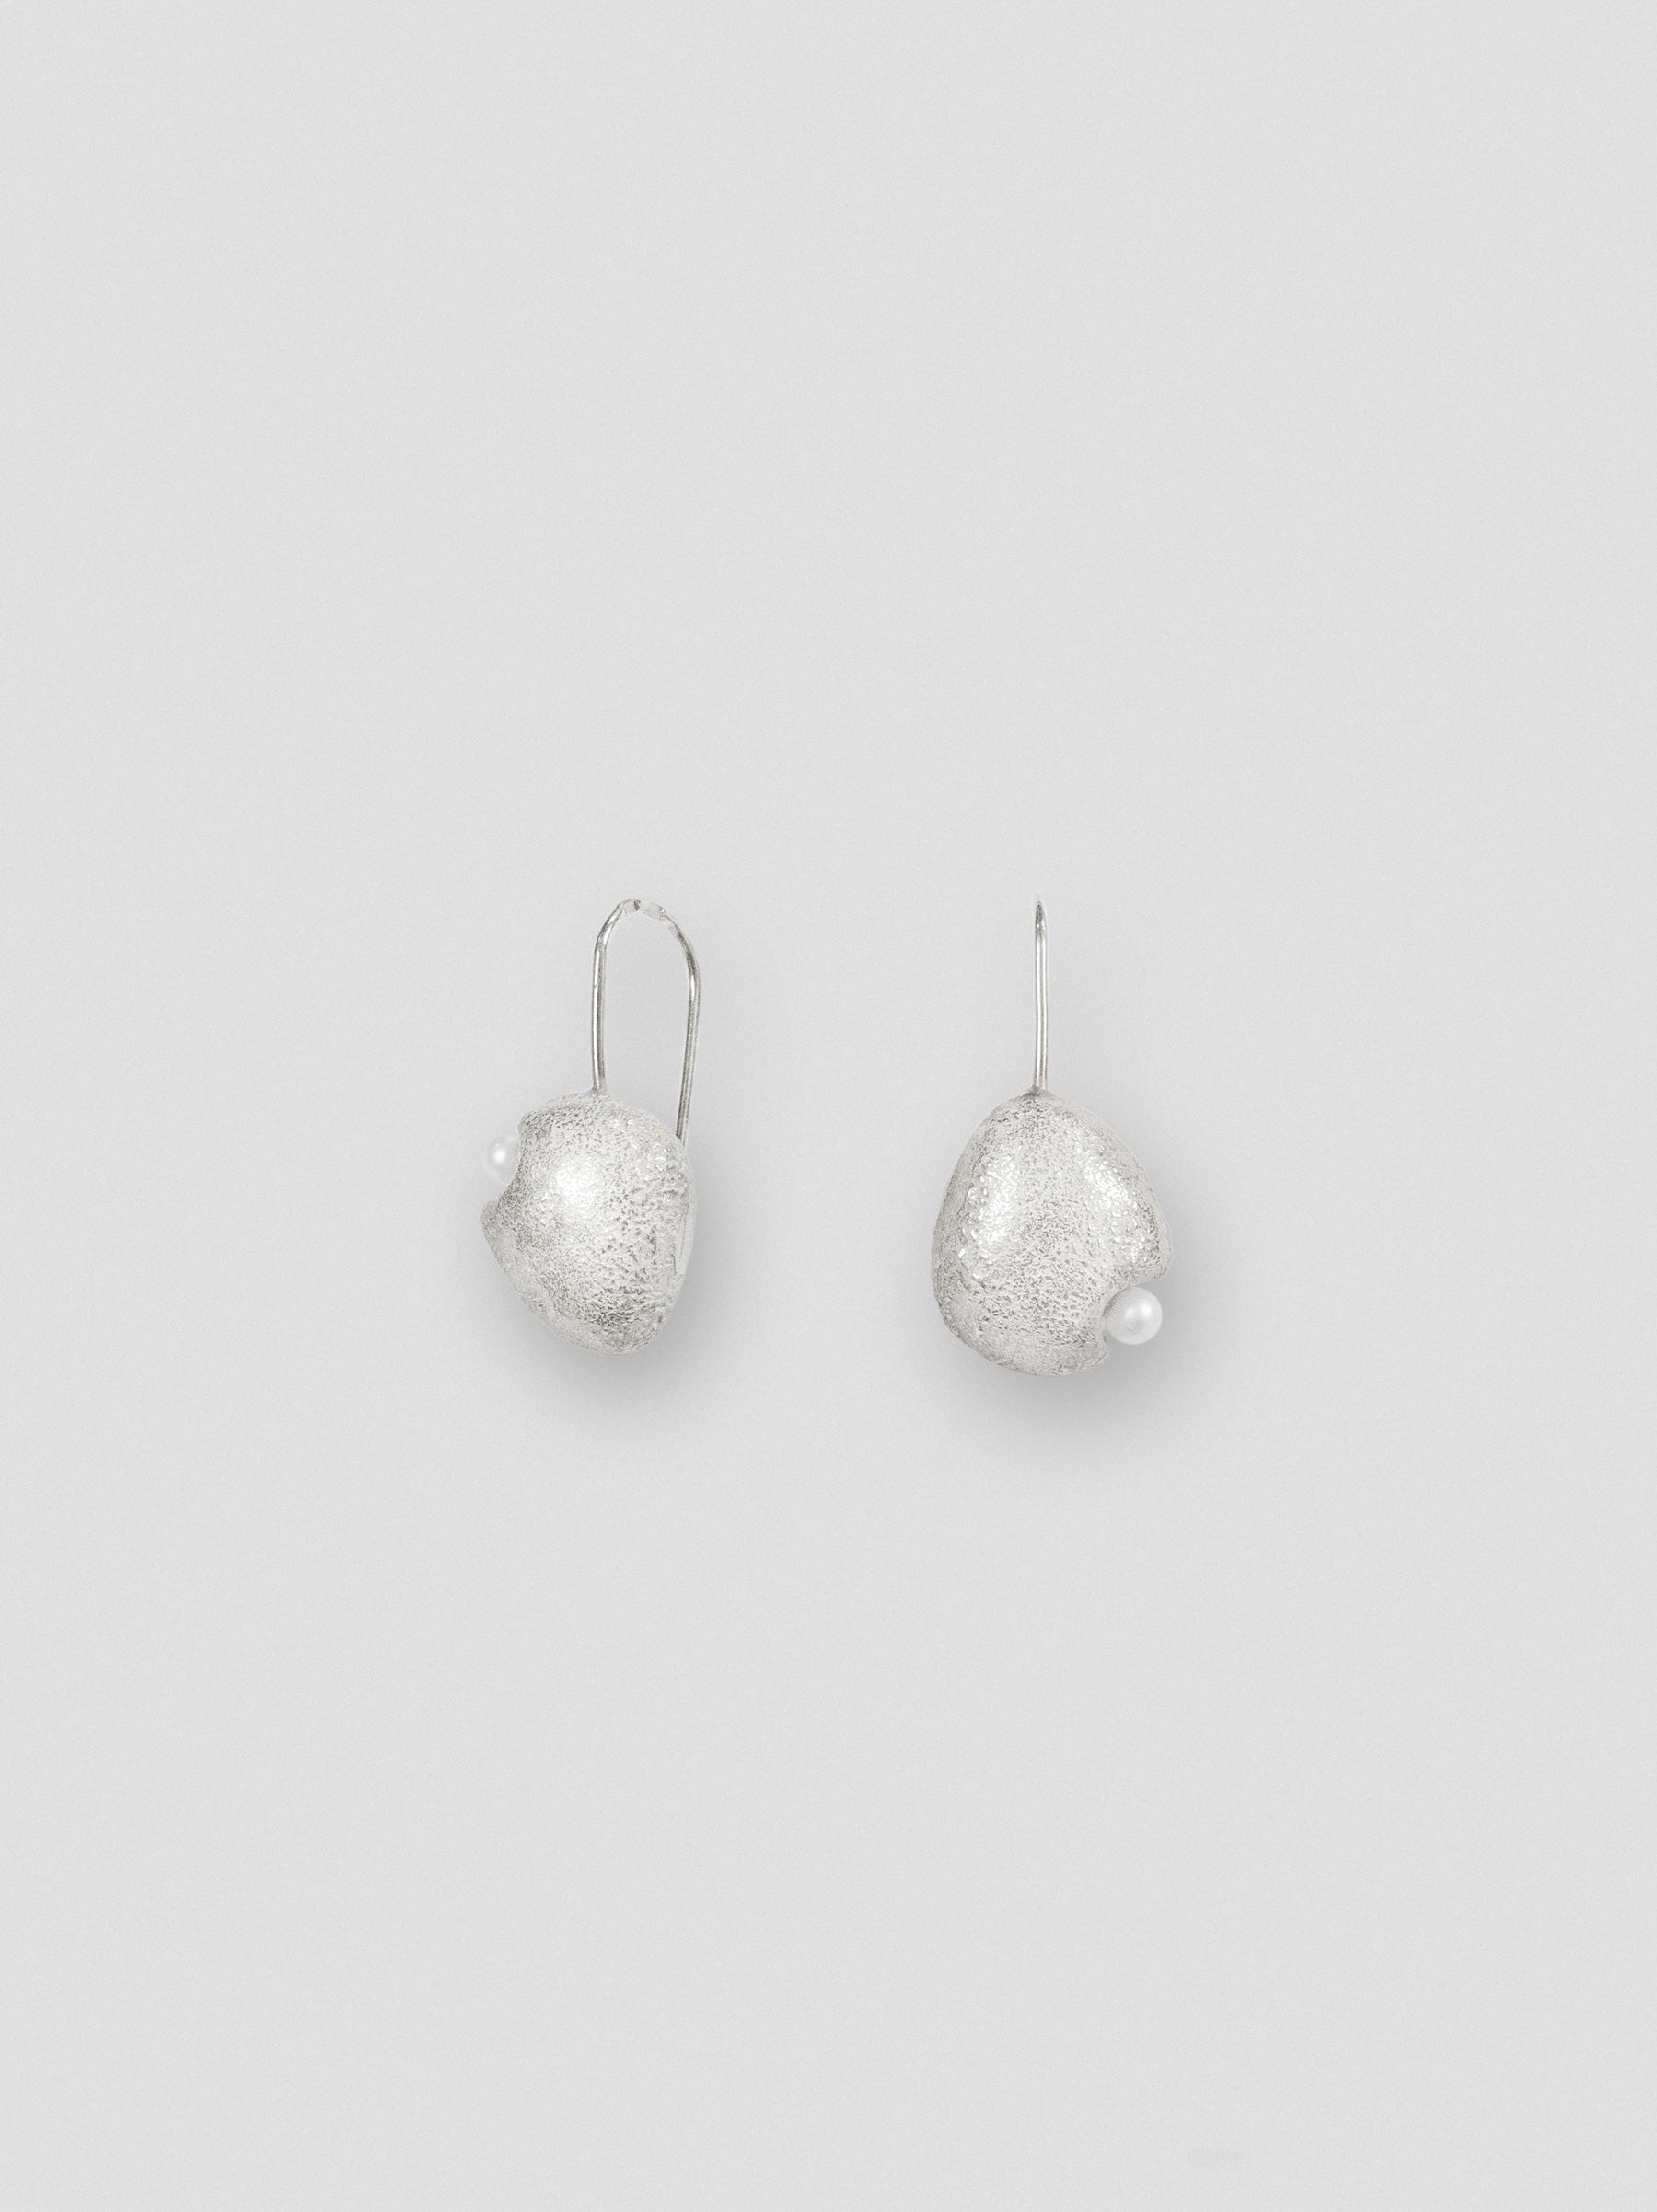 Drops Earrings – Paula Vieira Jewellery